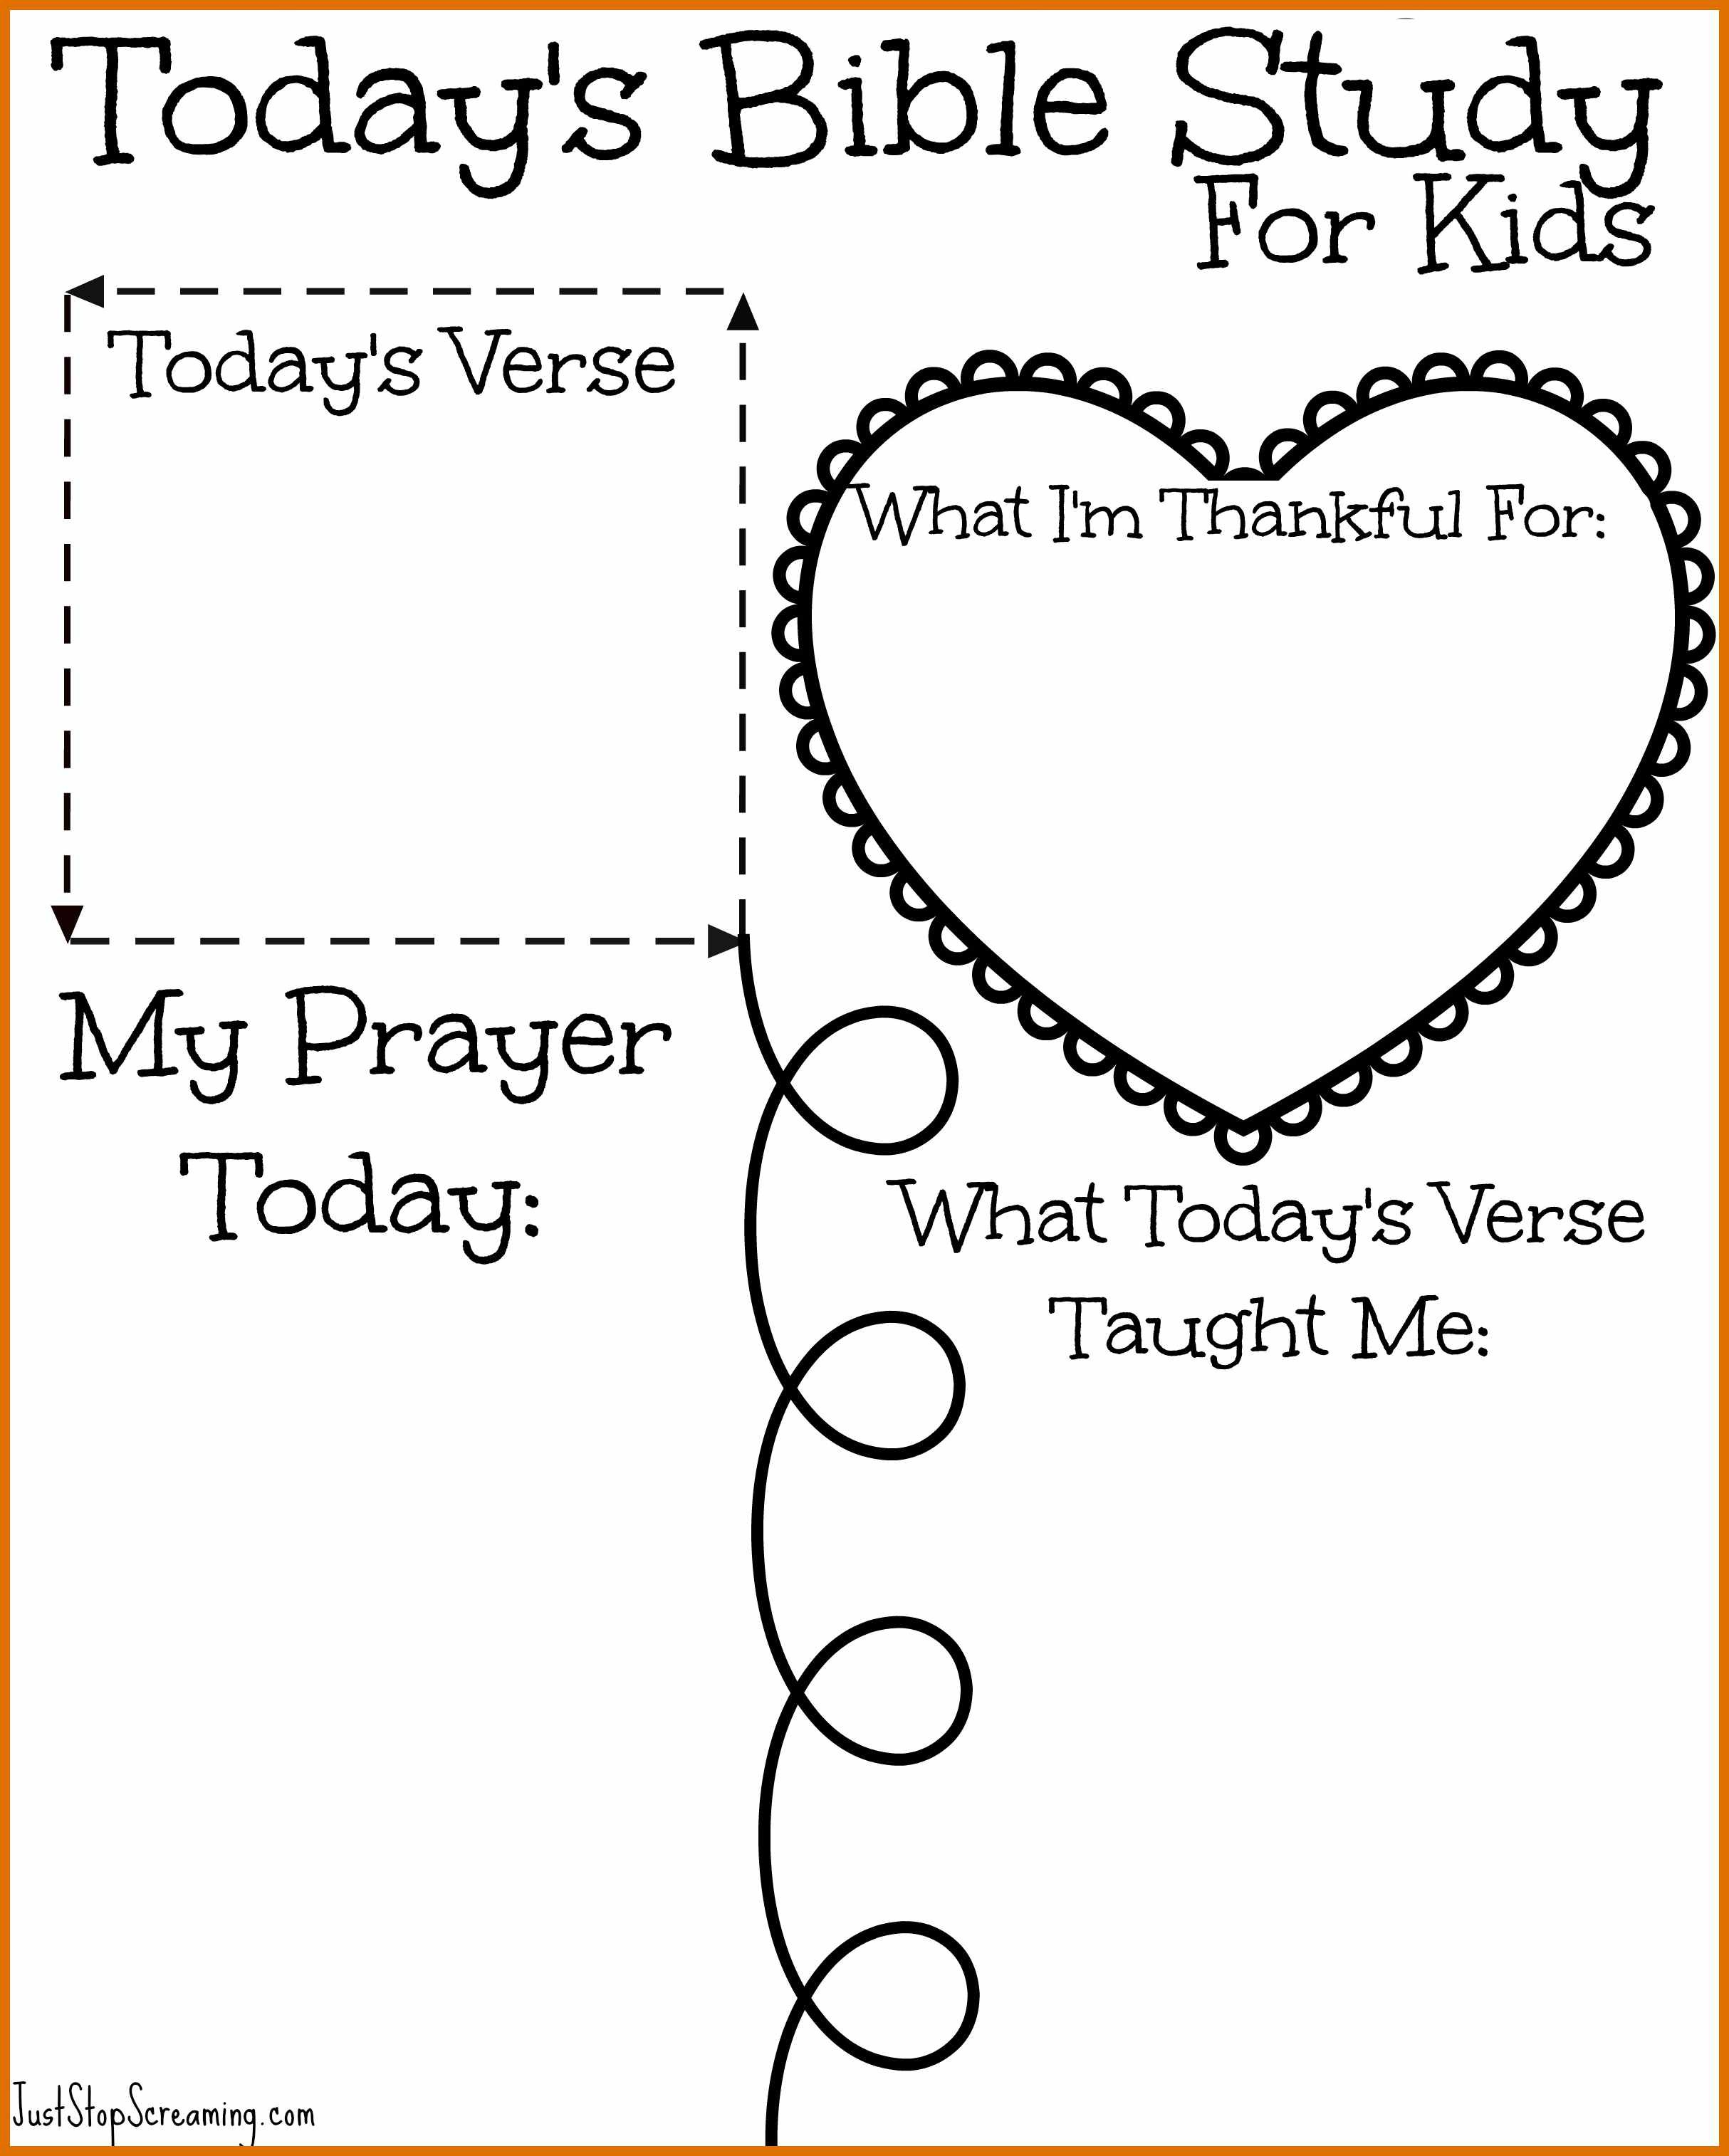 8-9 Free Printable Bible Study Worksheets | Sowtemplate - Free Printable Bible Study Worksheets